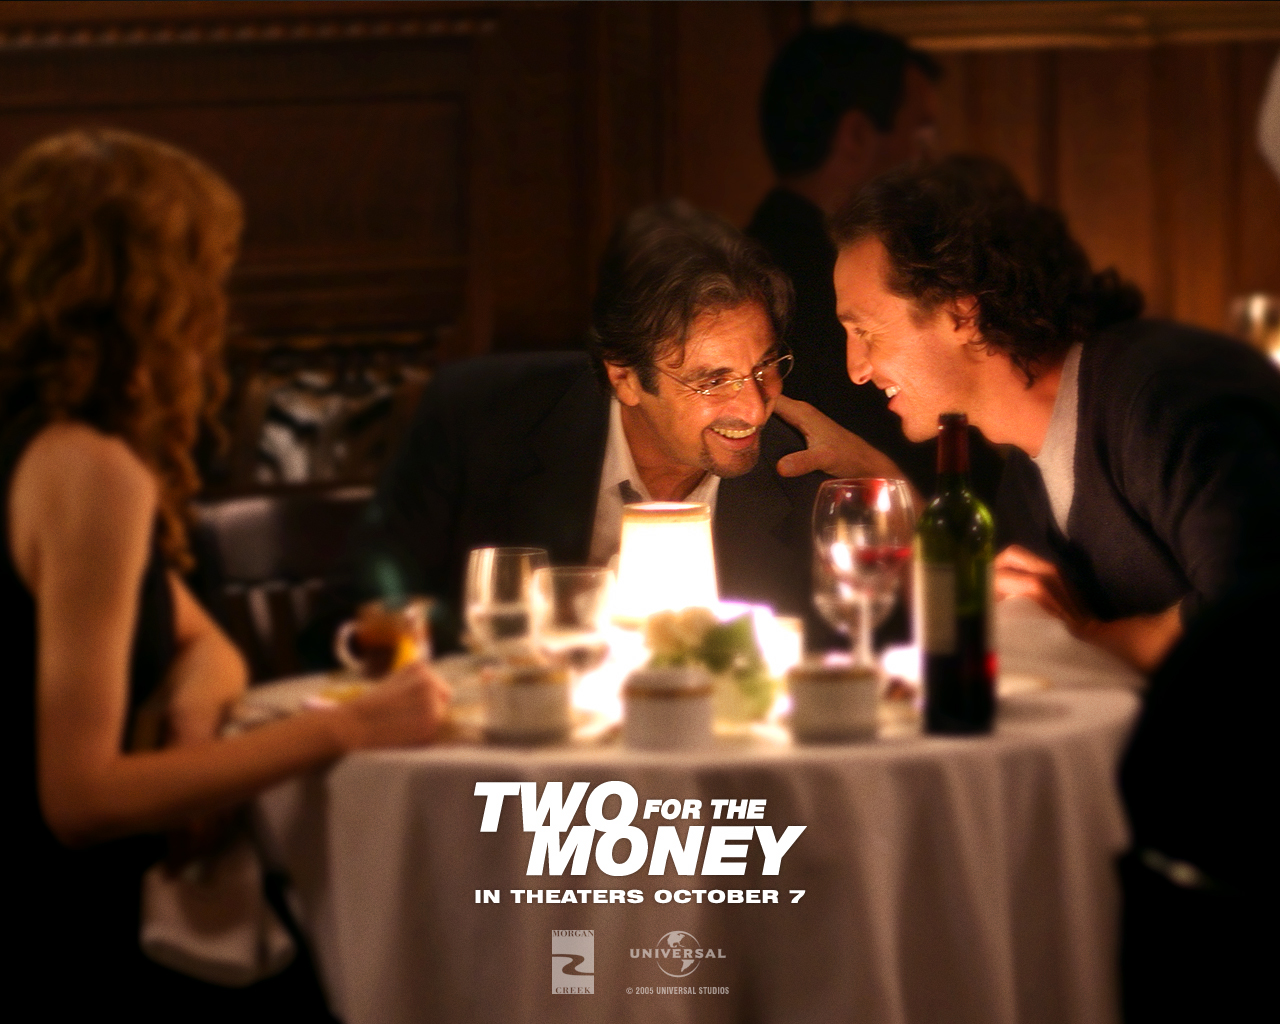 Al_Pacino_in_Two_for_the_Money